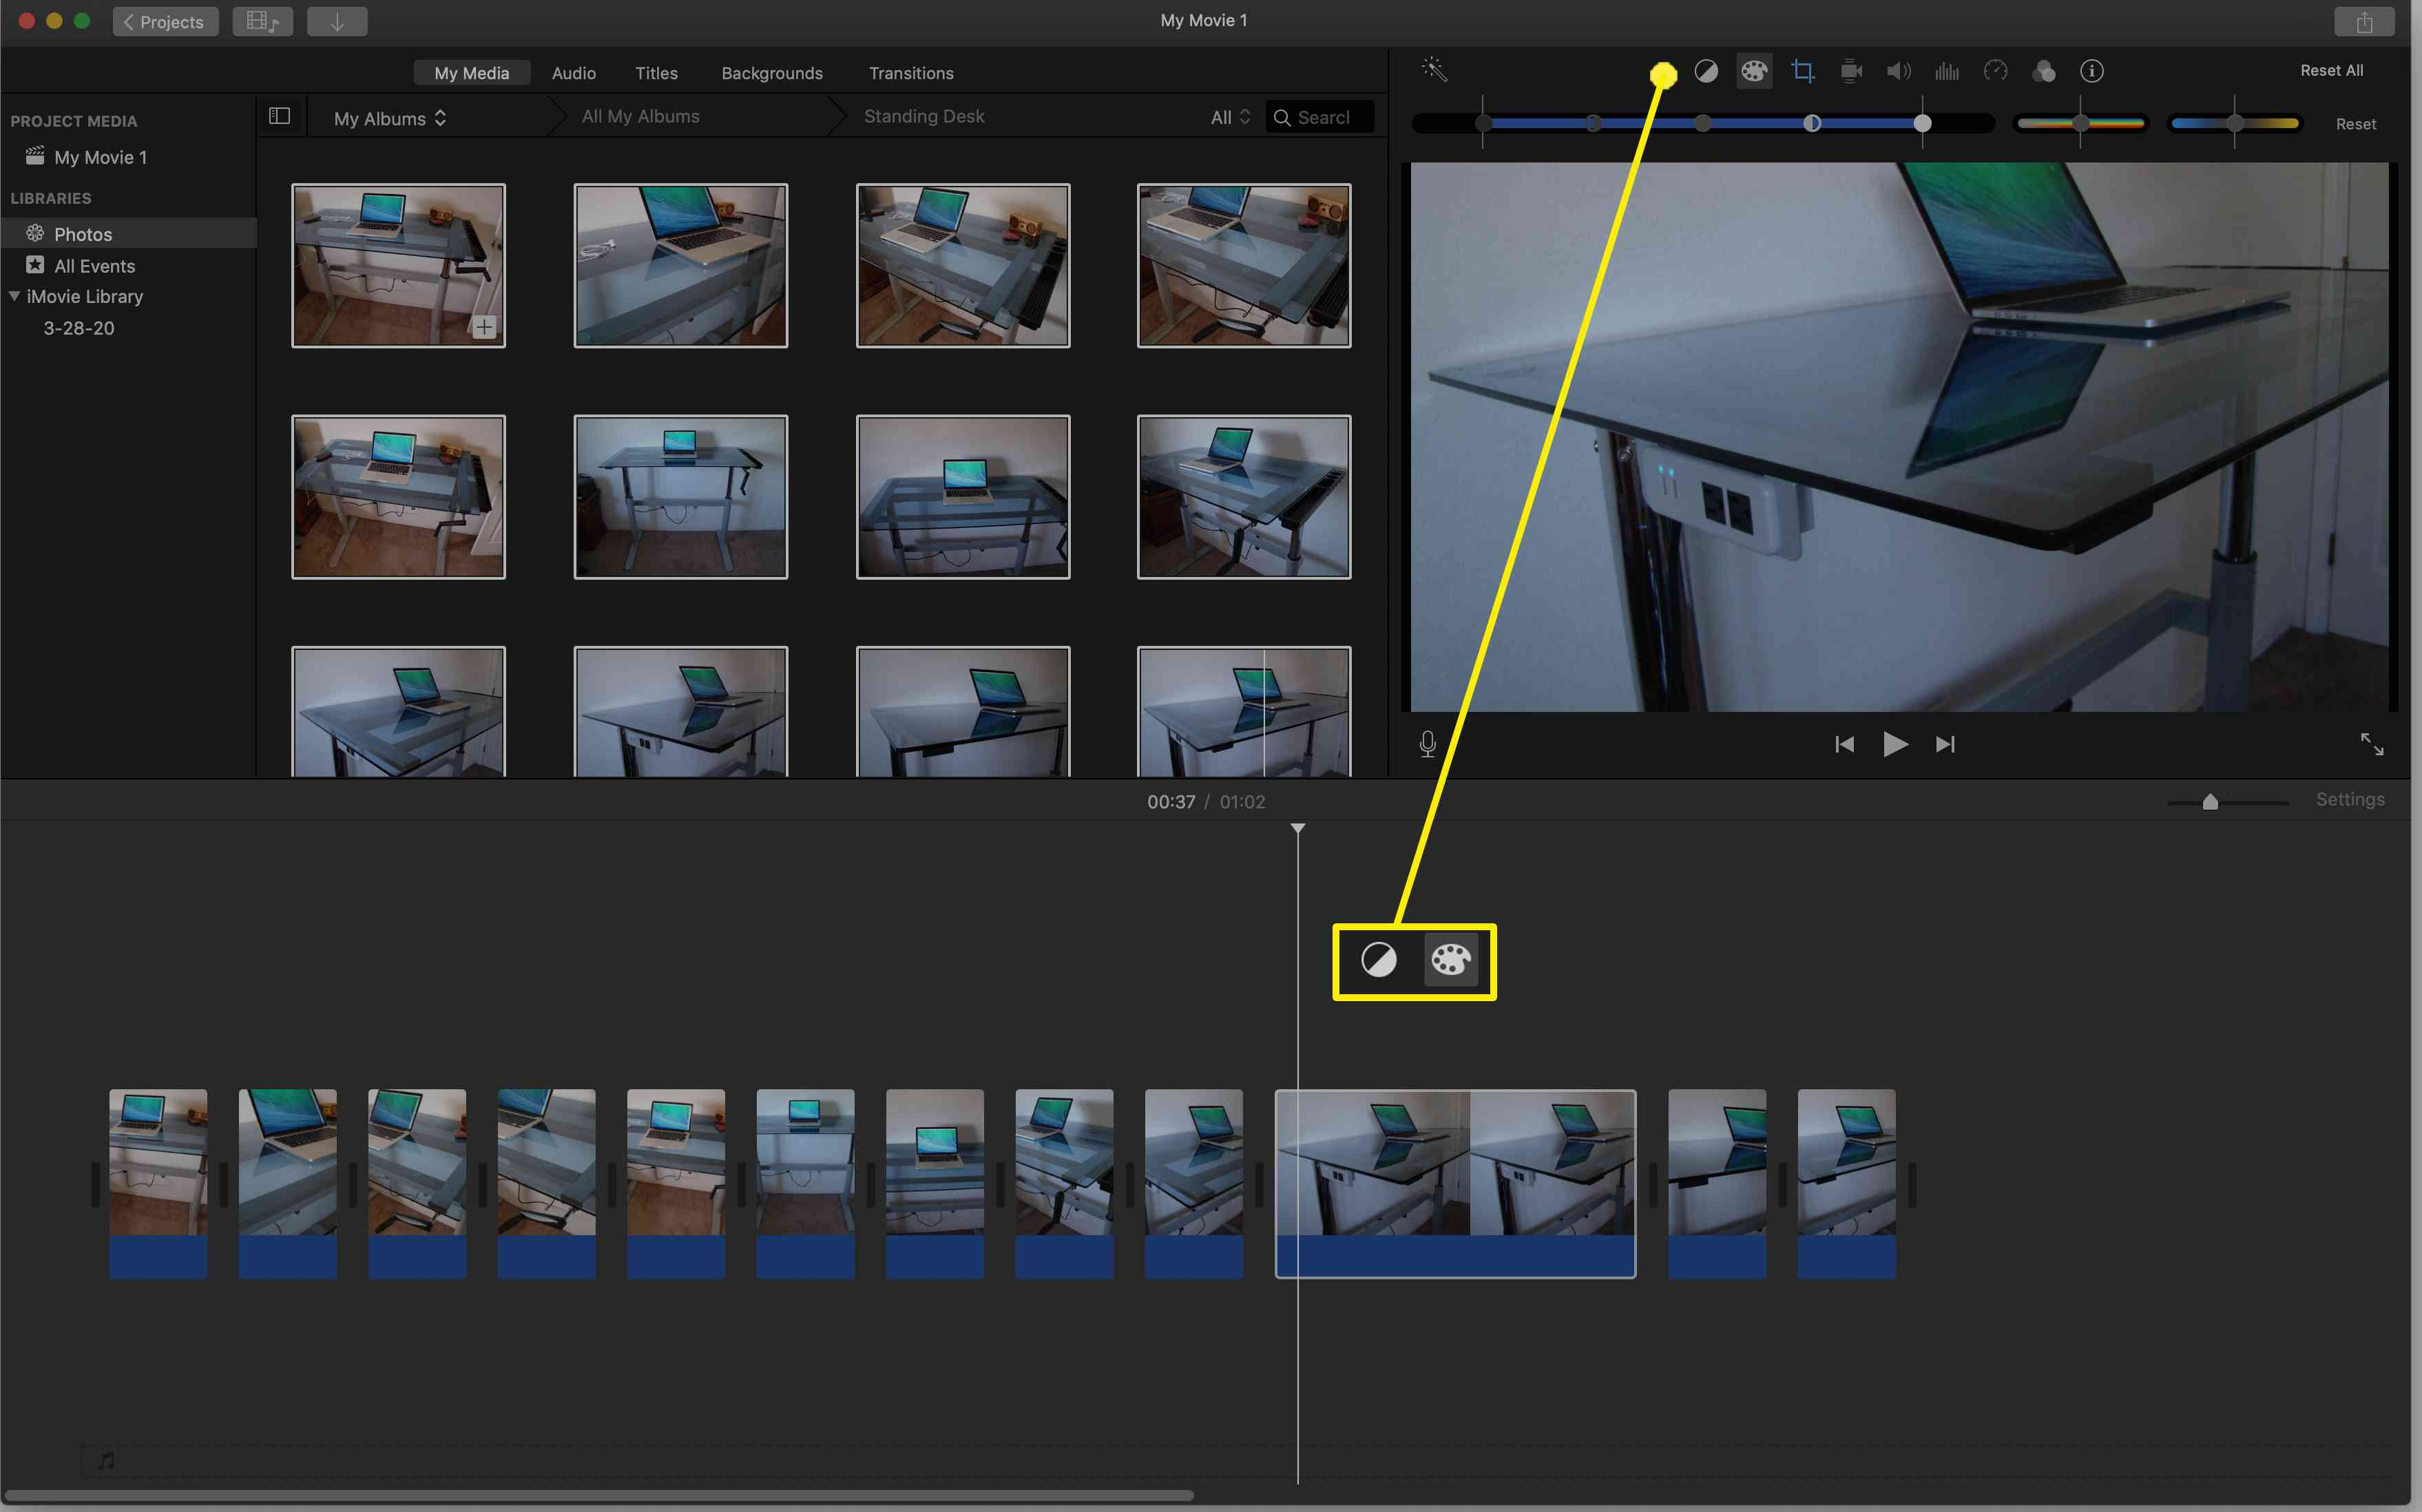 Use the icons above the photo in the preview window to color correct the image, change the brightness and contrast, adjust saturation.